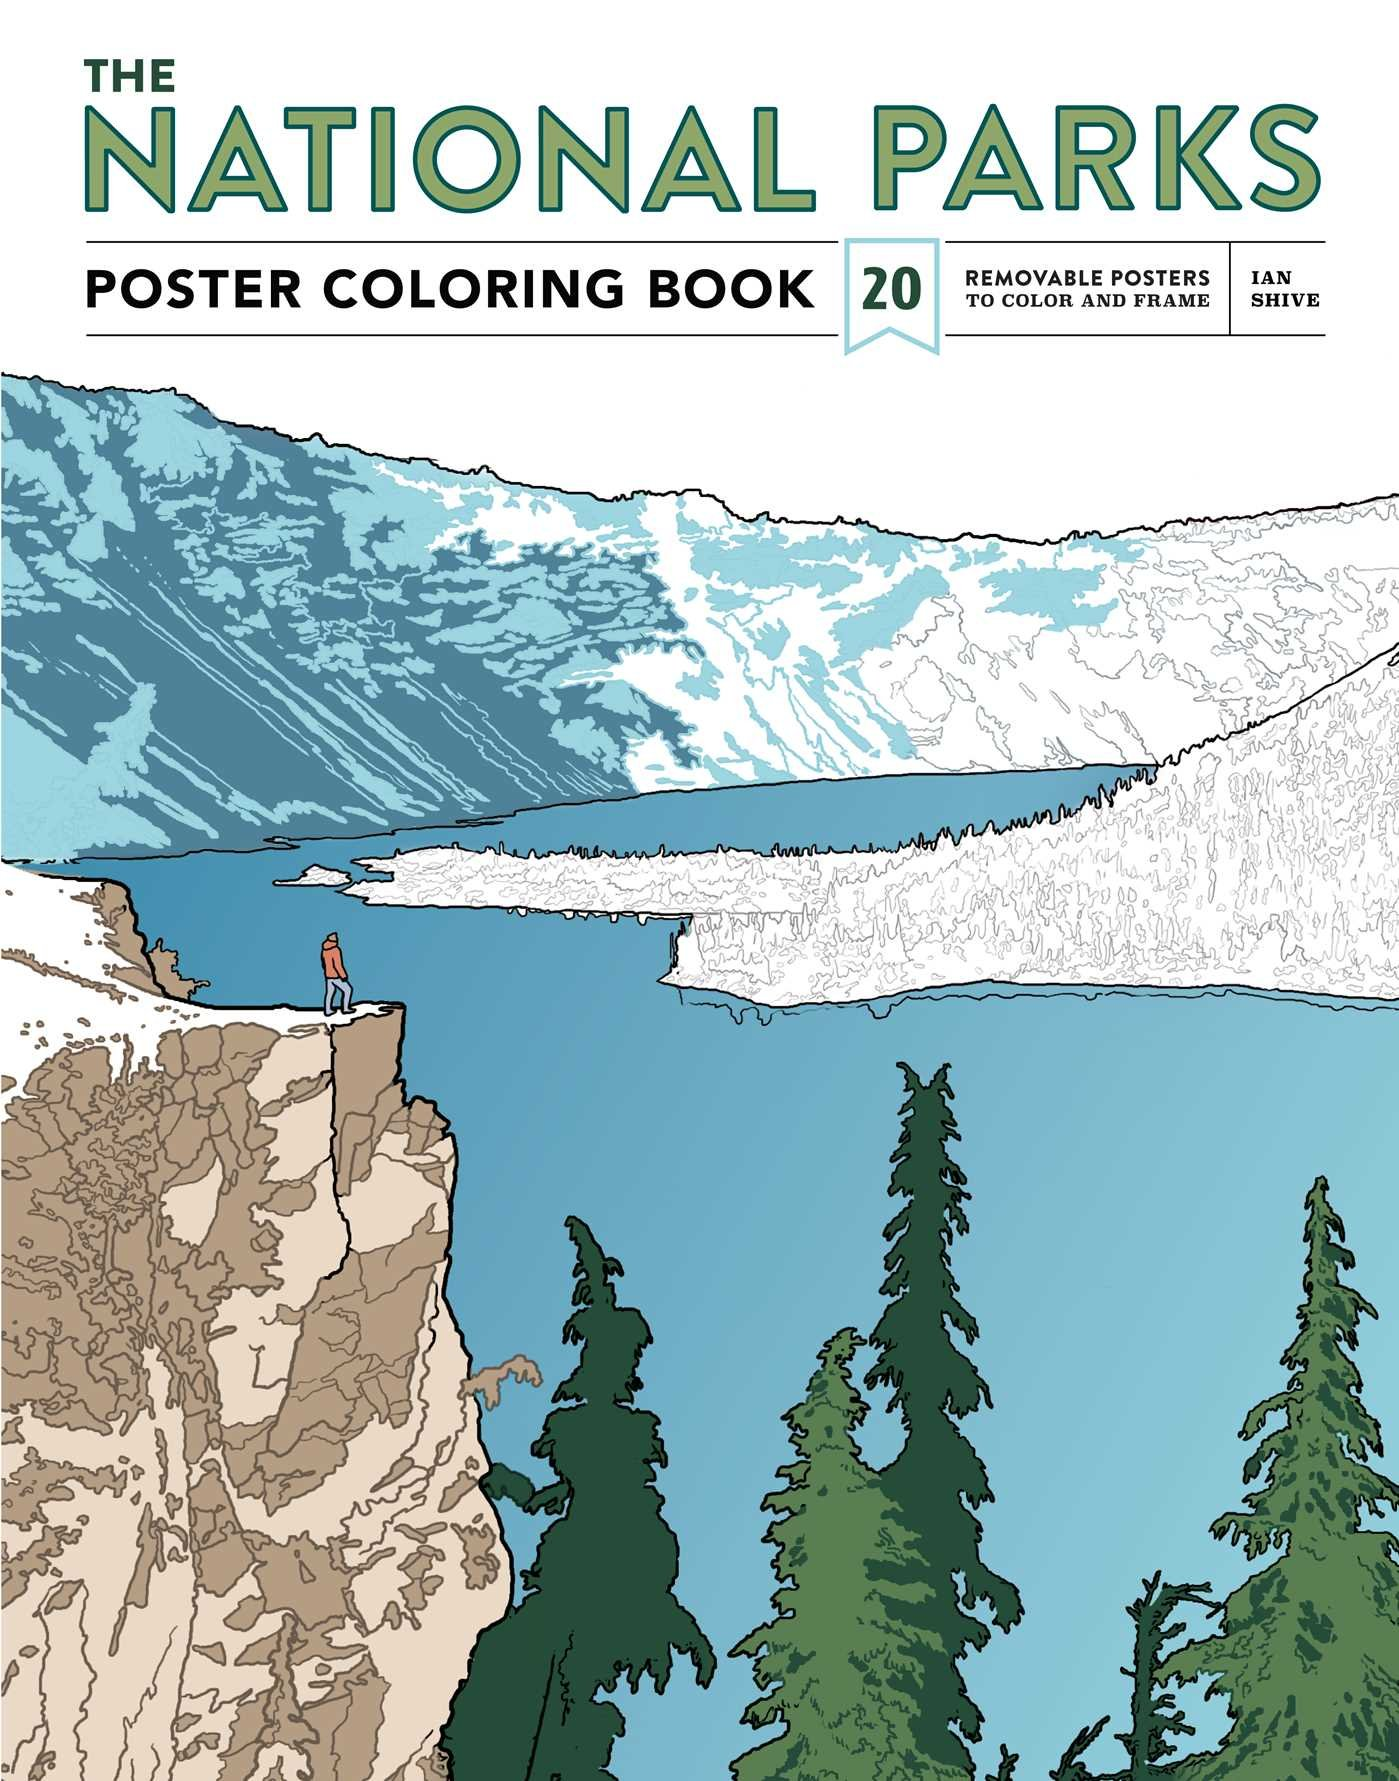 Download The National Parks Poster Coloring Book: 20 Removable Posters to Color and Frame pdf epub